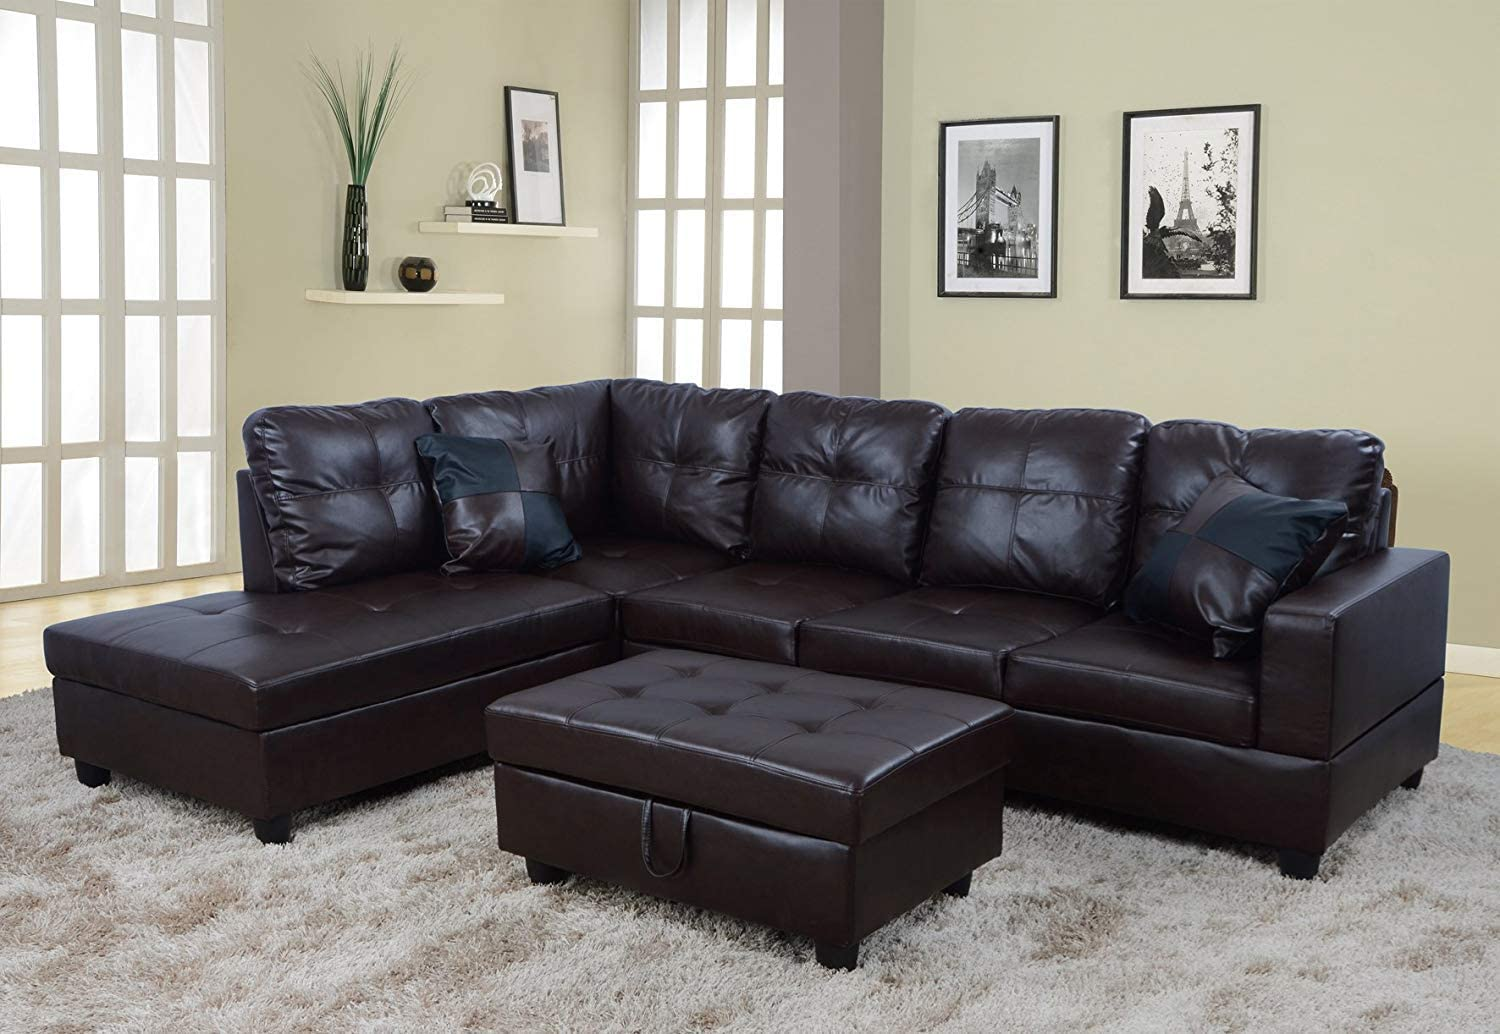 3 Piece Urbania Left Hand Facing Sectional Sofa Set Living Room Couch Dark Chocolate Kitchen Dining